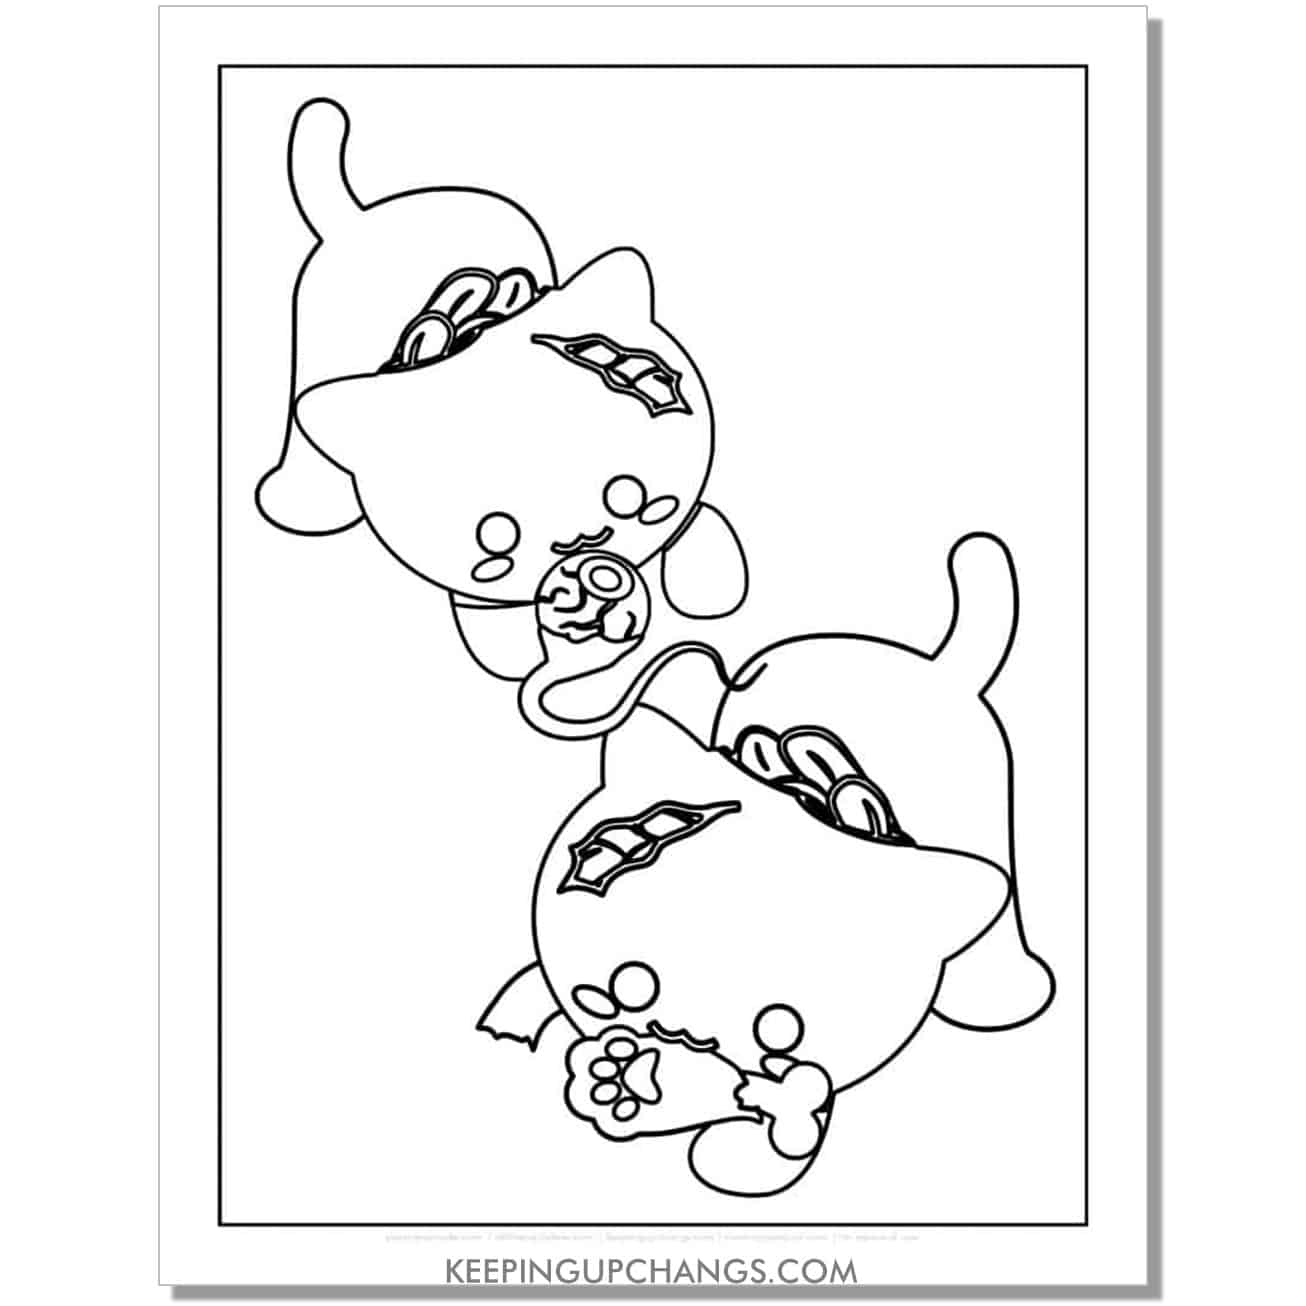 zombie halloween kittens coloring page.